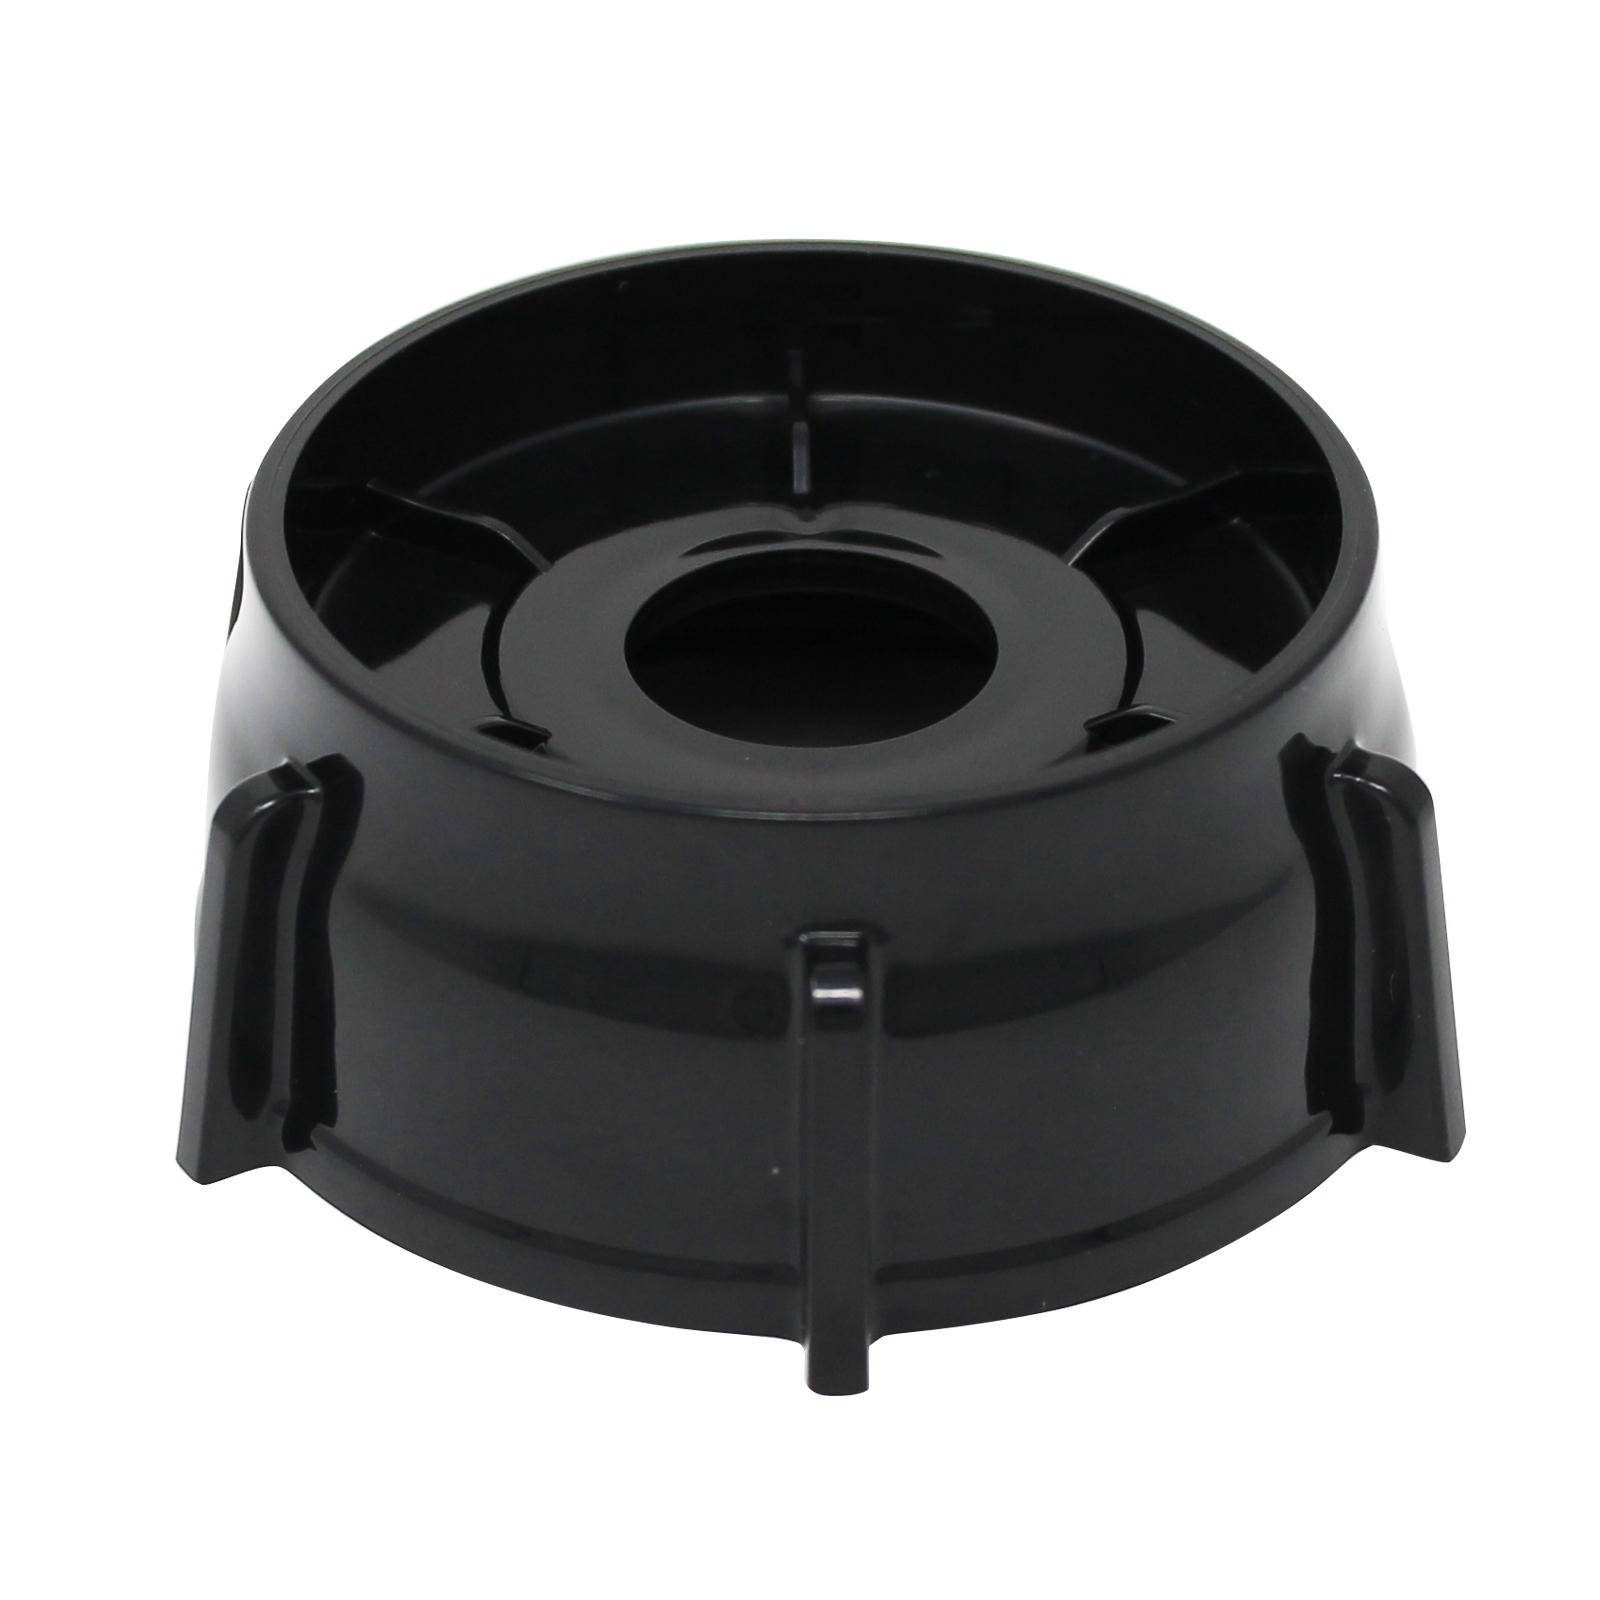 Replacement Oster 148381-000-090 Blender Jar Bottom Cap for Oster BCCG08-C 8 Speed Blender - image 3 of 3